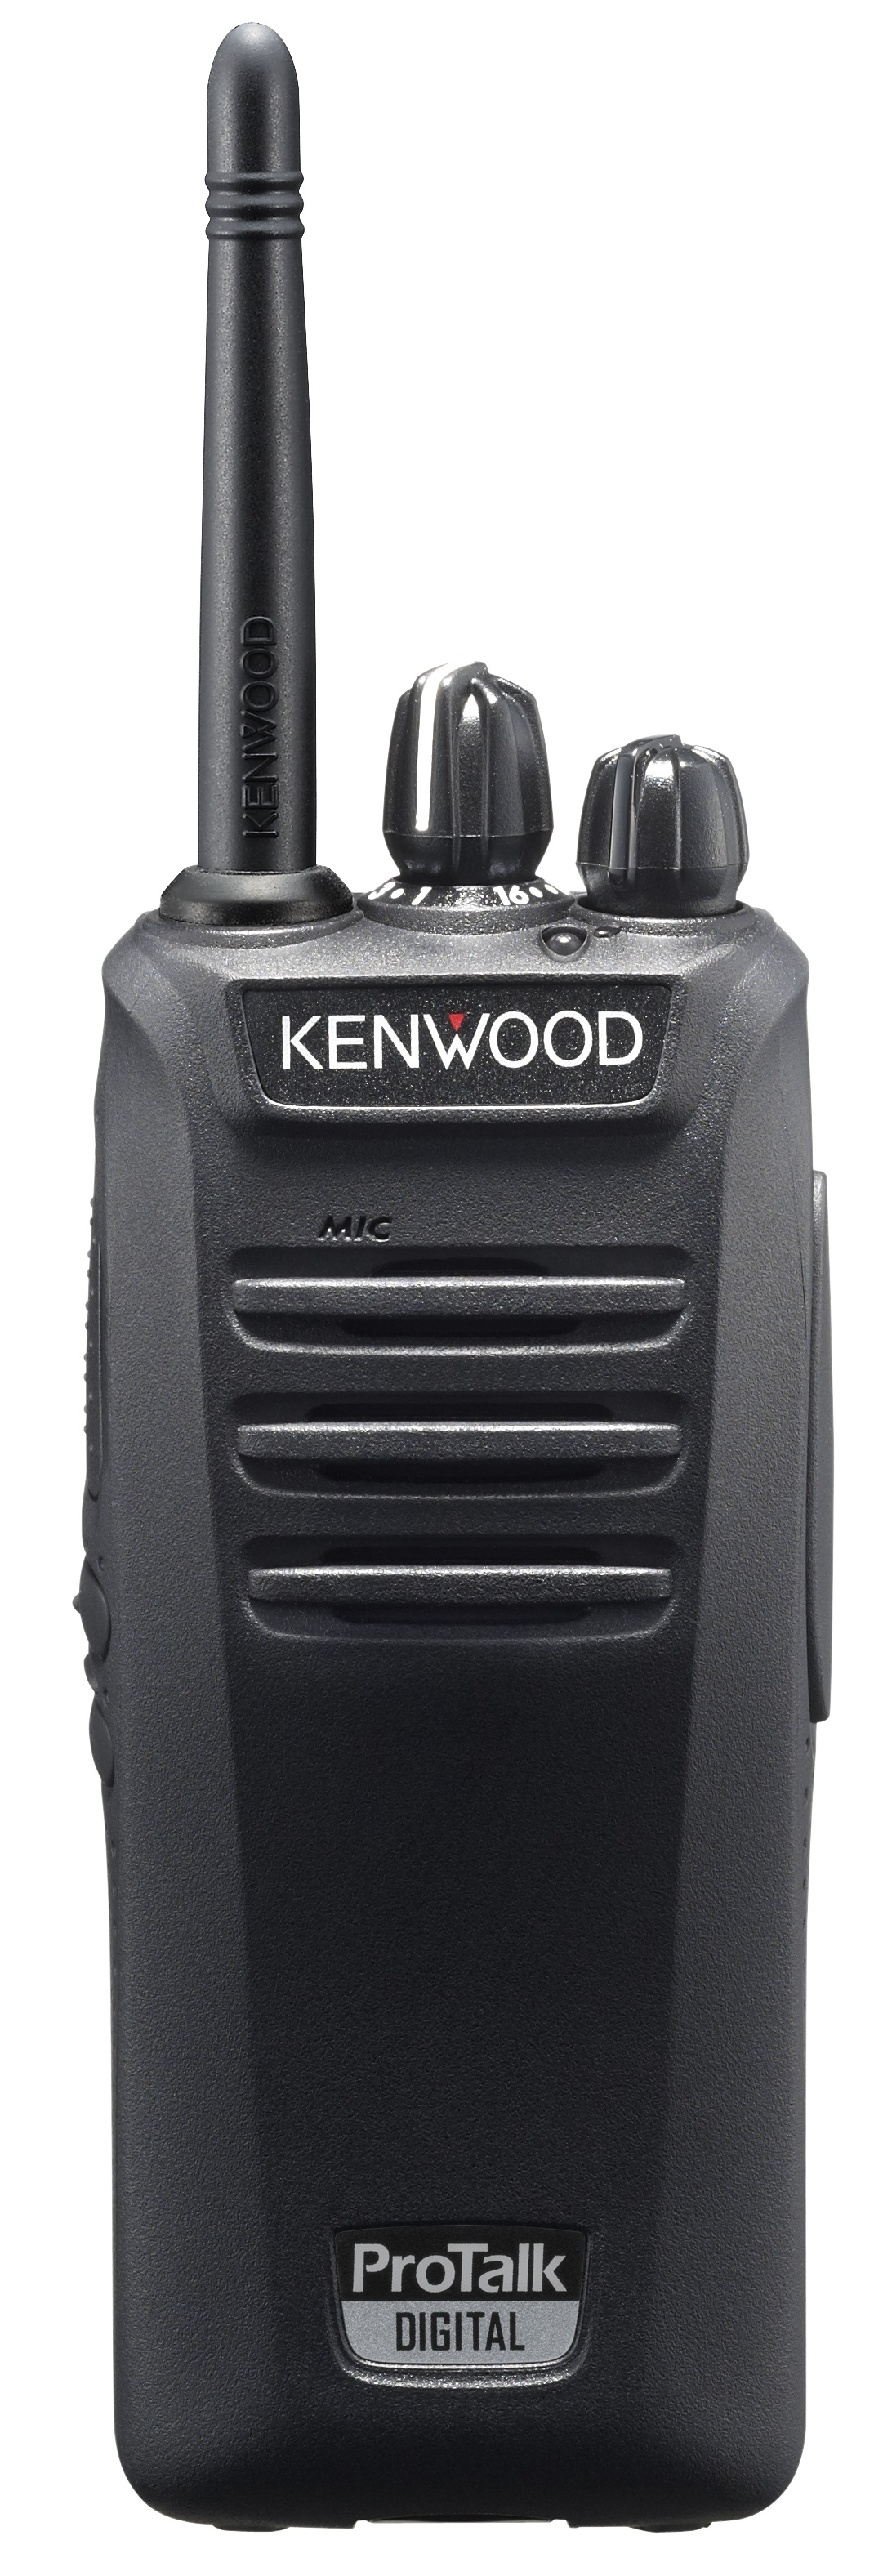 KENWOOD TK-3401DE PMR-446 DIGITAL